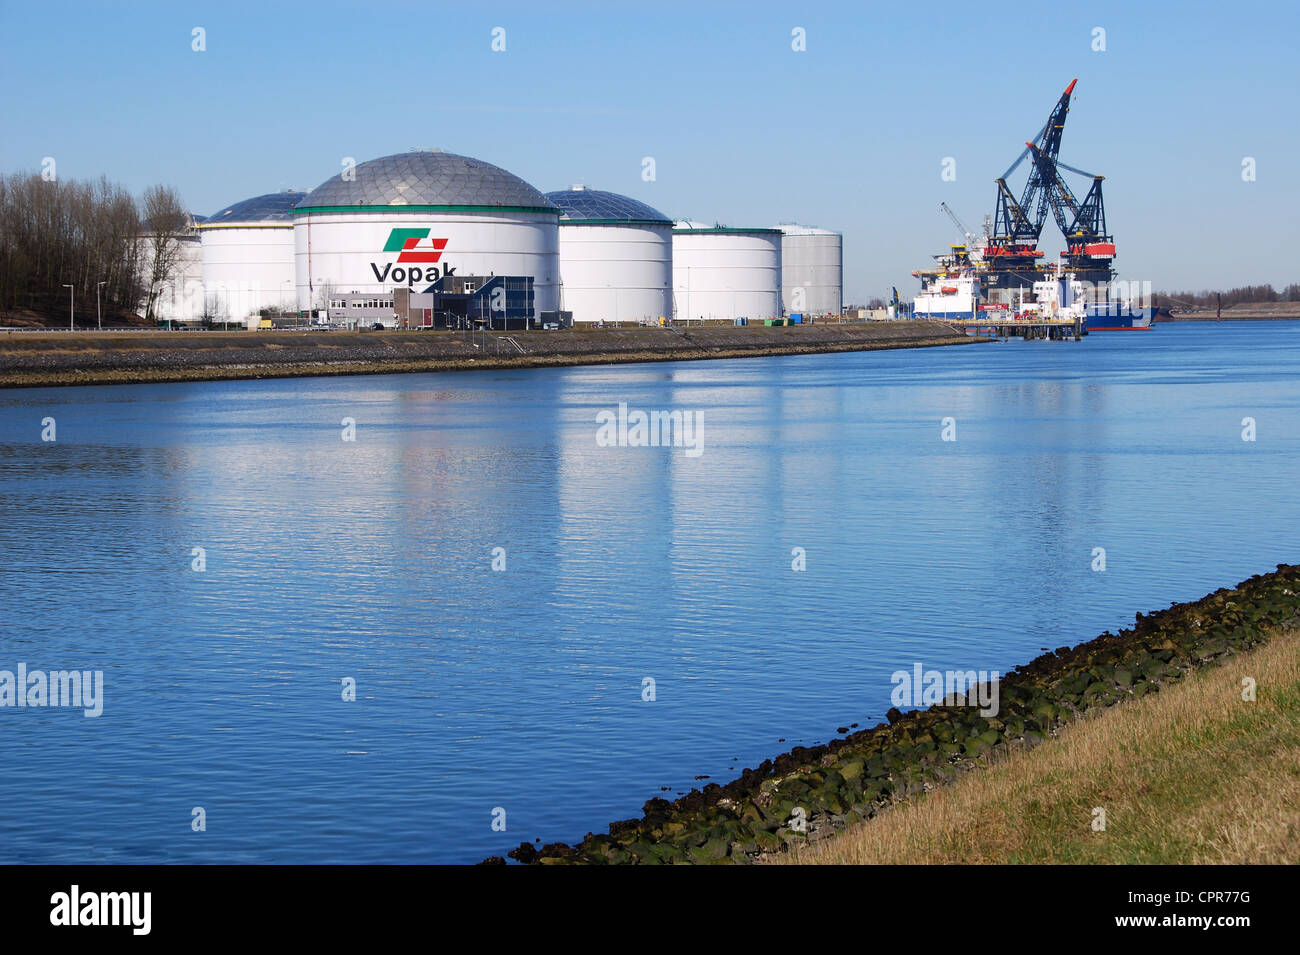 Vopak tank terminals for storage of petrochemicals and fuels, Europoort, Rotterdam, Netherlands - Stock Image